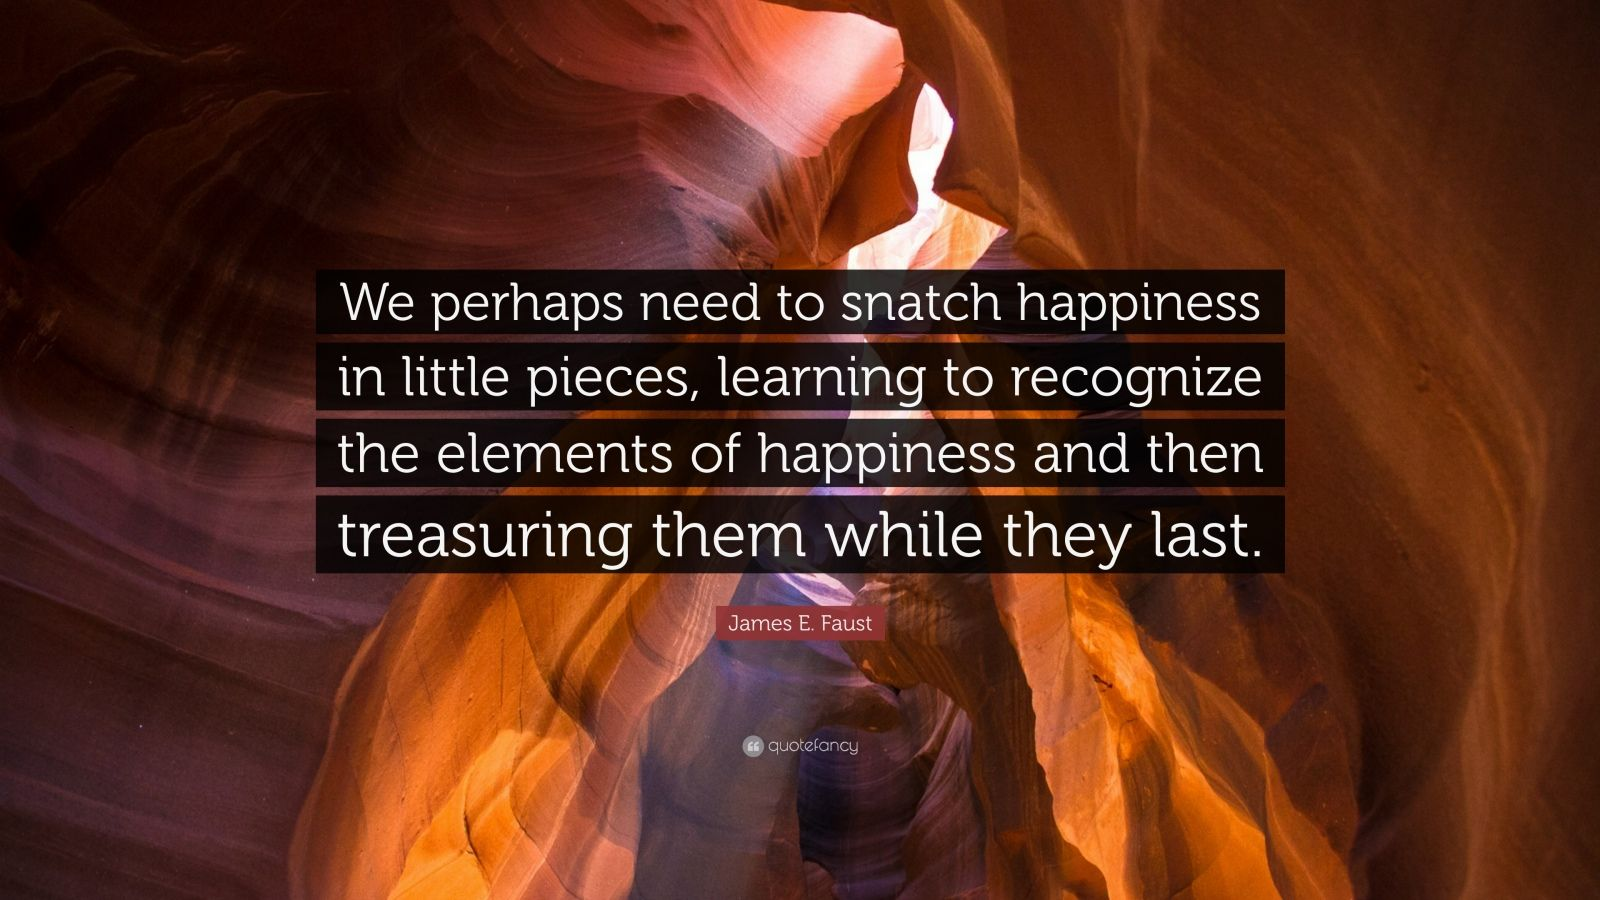 """James E. Faust Quote: """"We perhaps need to snatch happiness in little pieces, learning to recognize the elements of happiness and then treasuring them while they last."""""""